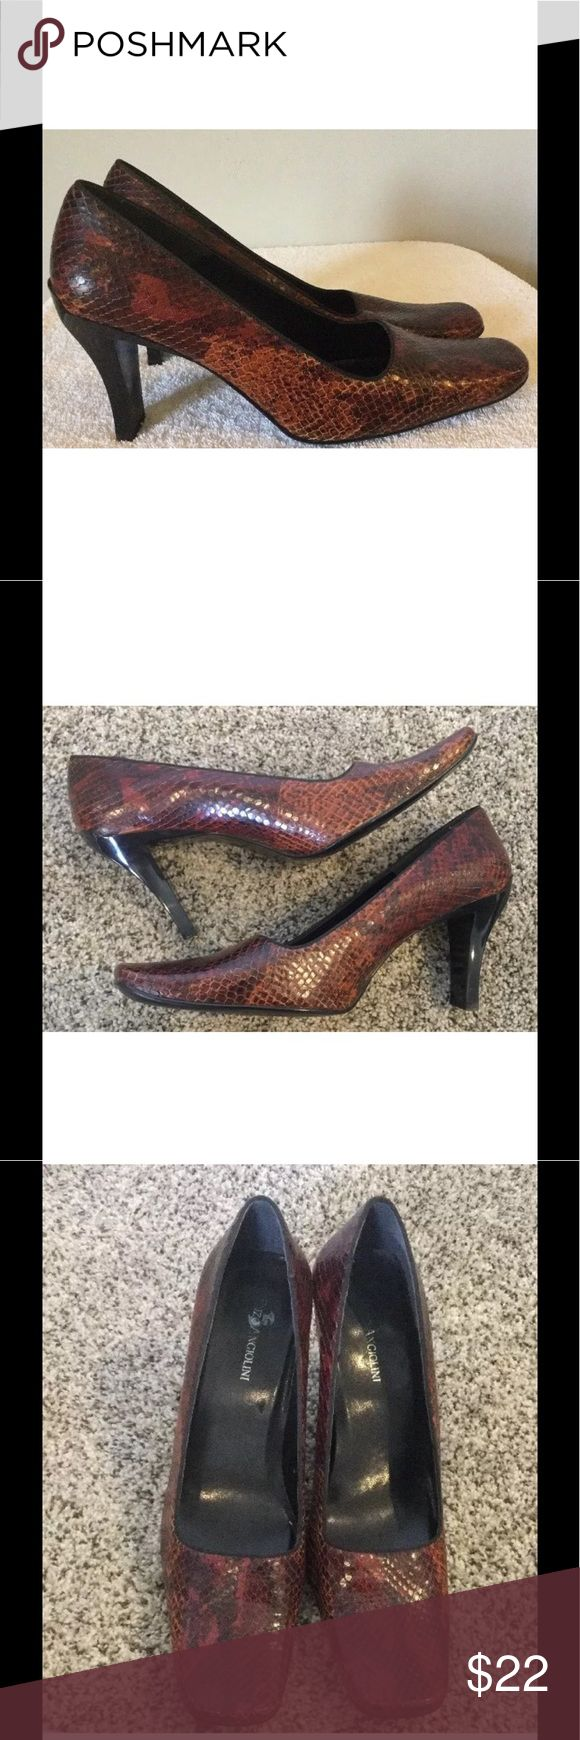 ENZO Angiolini Leather Python Pumps 9.5M ENZO ANGIOLINI Women's 9.5 M Genuine Leather Python Print Pumps  • Square toe, slip on  • Black soles and block heel incorporated into sole, not a separate piece.  • Genuine leather with python snake pattern, primarily dark orange with some brown & red  • Excellent condition - Minor scuffs - very clean condition inside & on soles & heels please inspect photos  • No box Enzo Angiolini Shoes Heels